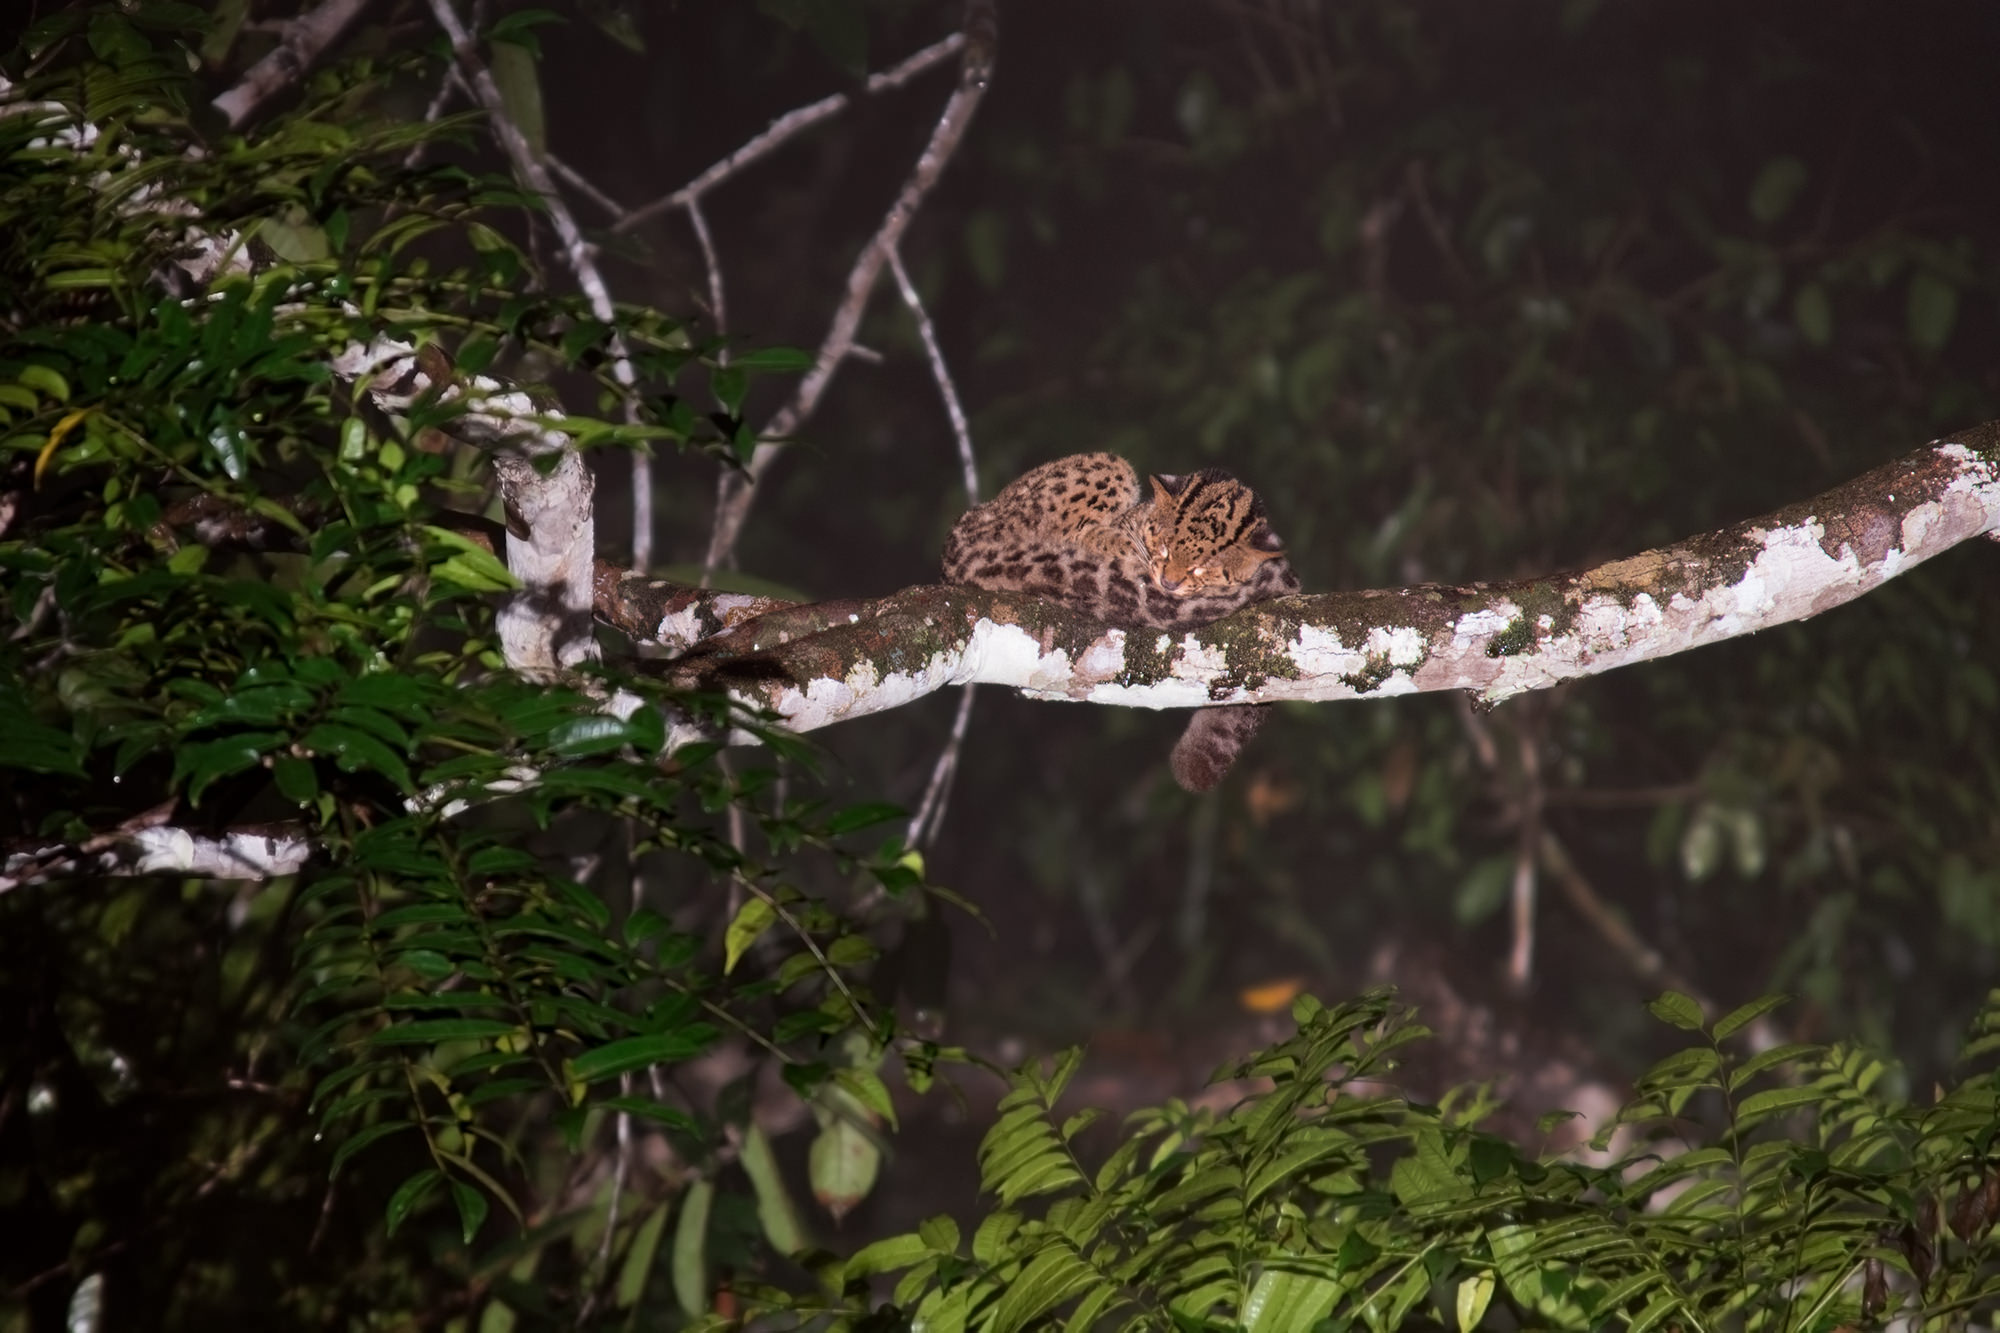 Wild cats of Borneo - Marbled cat